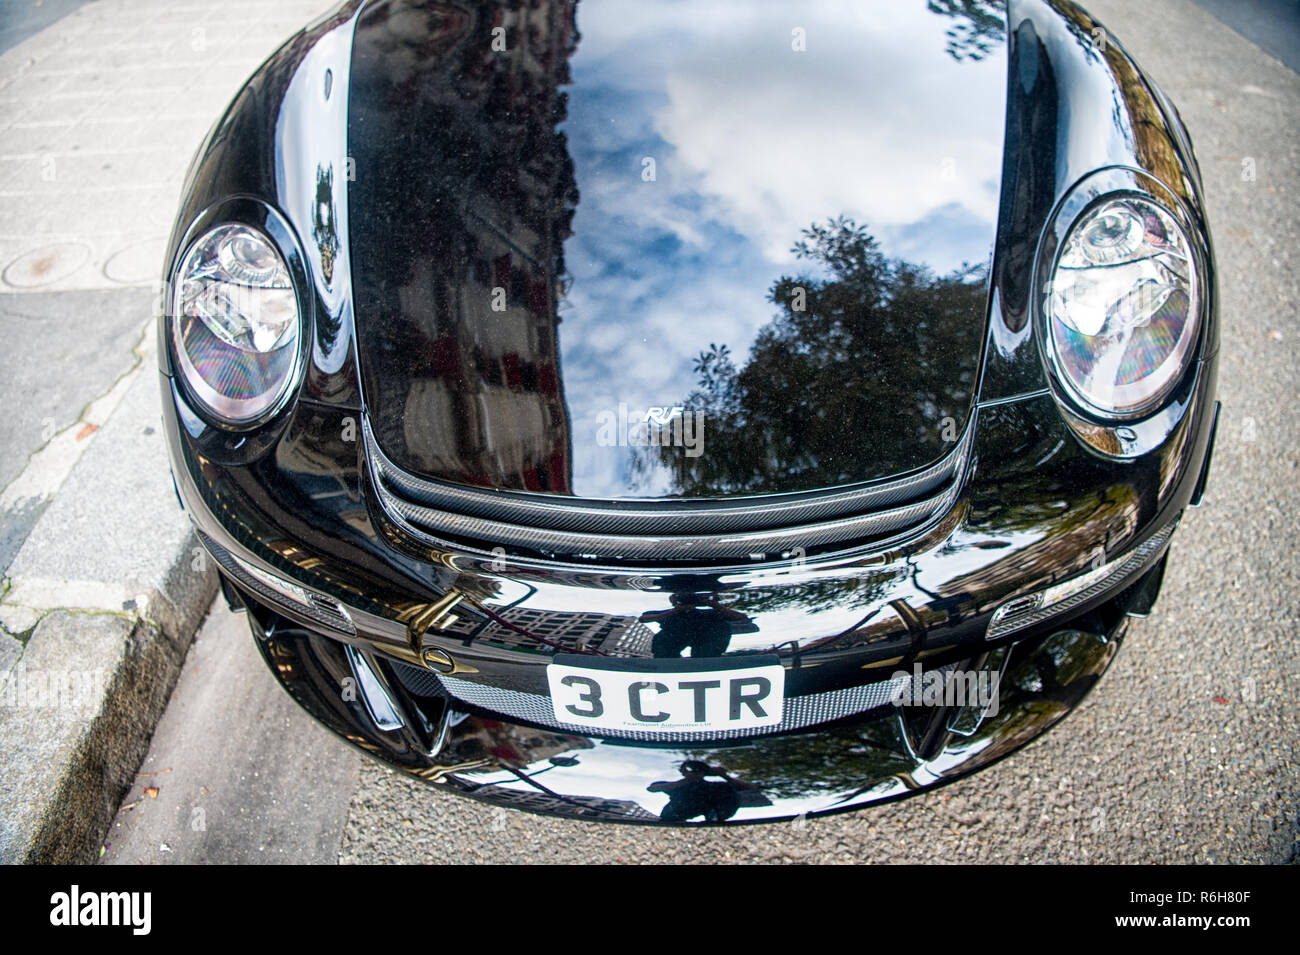 Paris, France - September 26, 23, 2017: luxury Supercar Porsche RUF CTR3 Clubsport black color parked on the street in Paris. Porshe is famous expensive automobile brand car - Stock Image